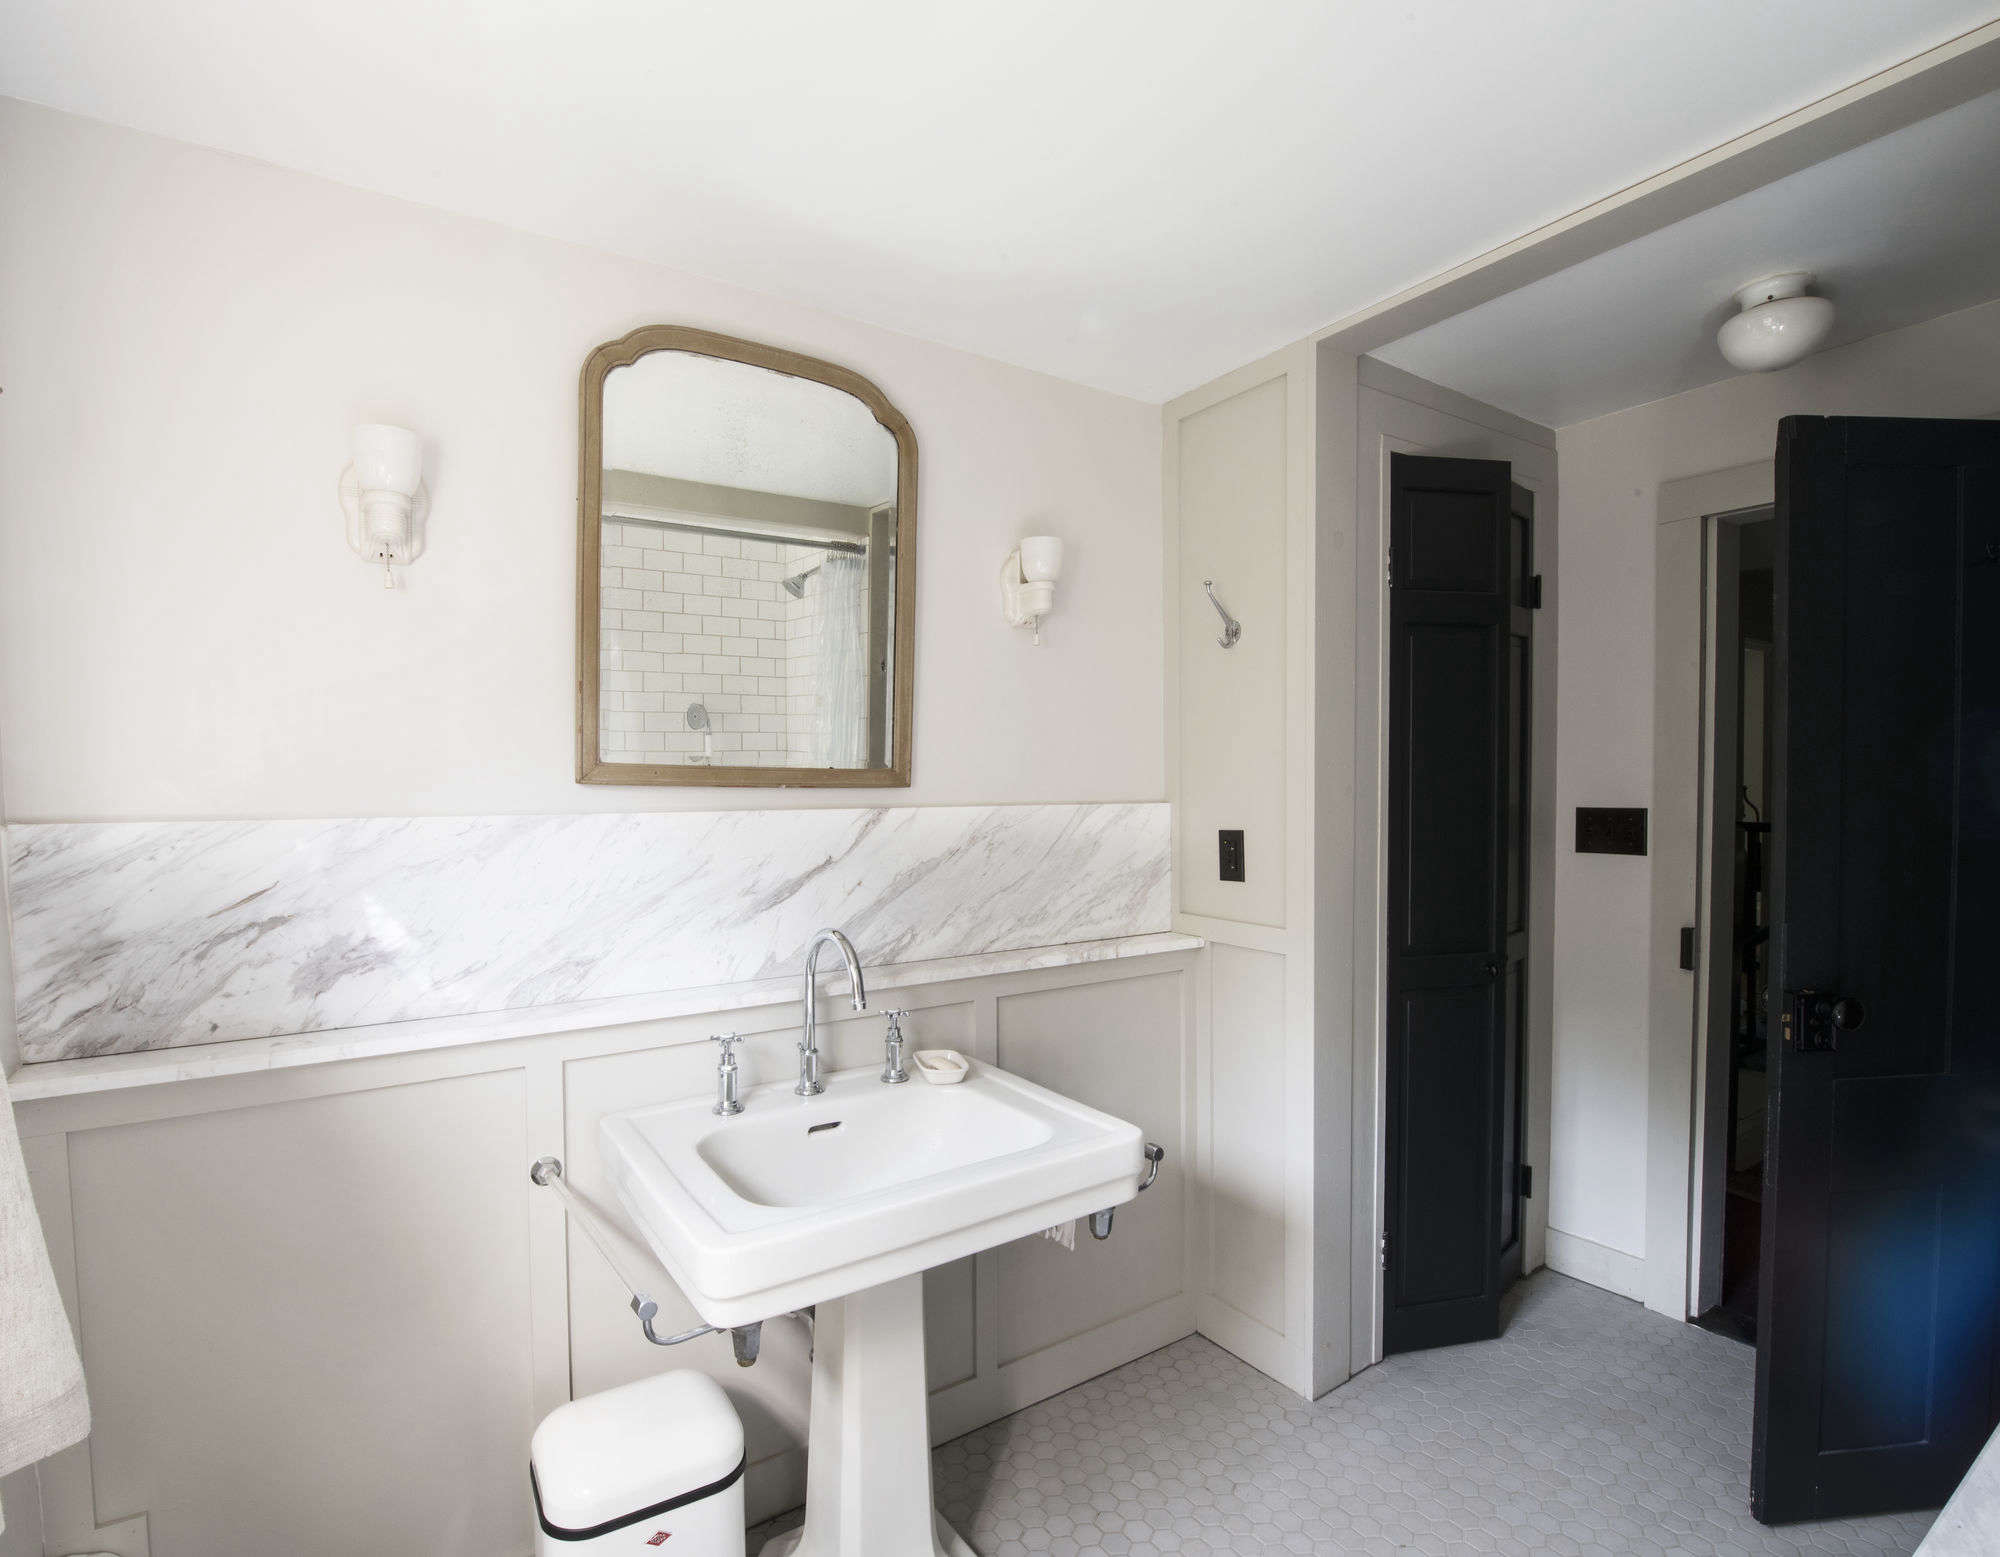 Times square new years eve bathroom - Bathroom Of The Week A 1920s Inspired Bathroom In A Renovated Ny Farmhouse